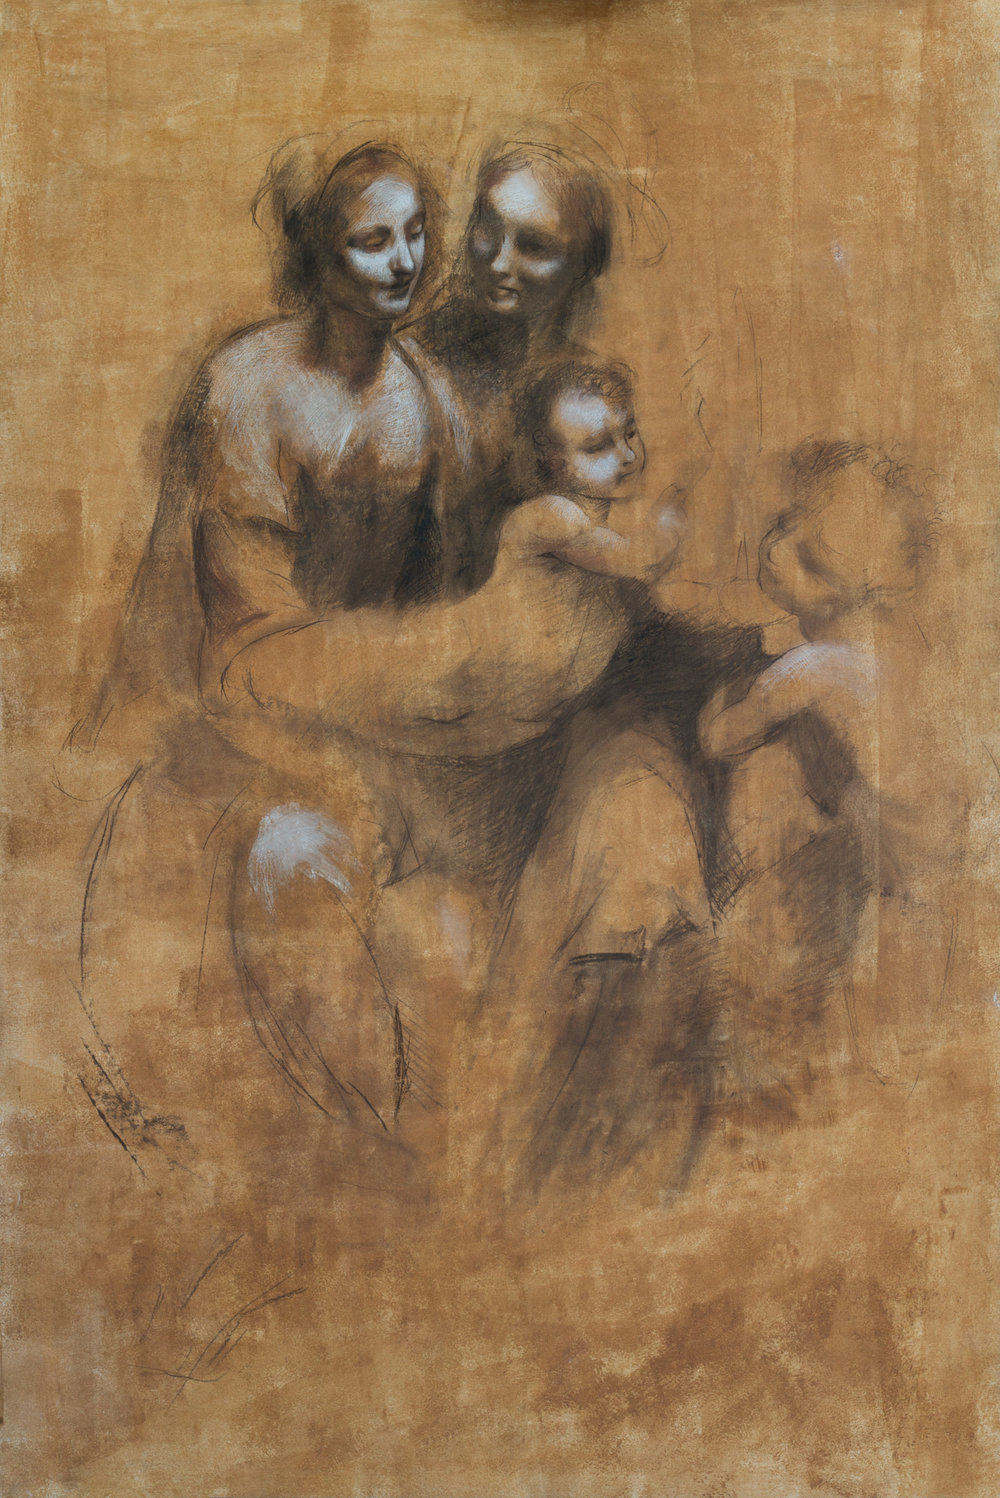 Copy after Leonardo's The Virgin and Child with St Anne and St John the Baptist, 90x120, unframed, October 2017